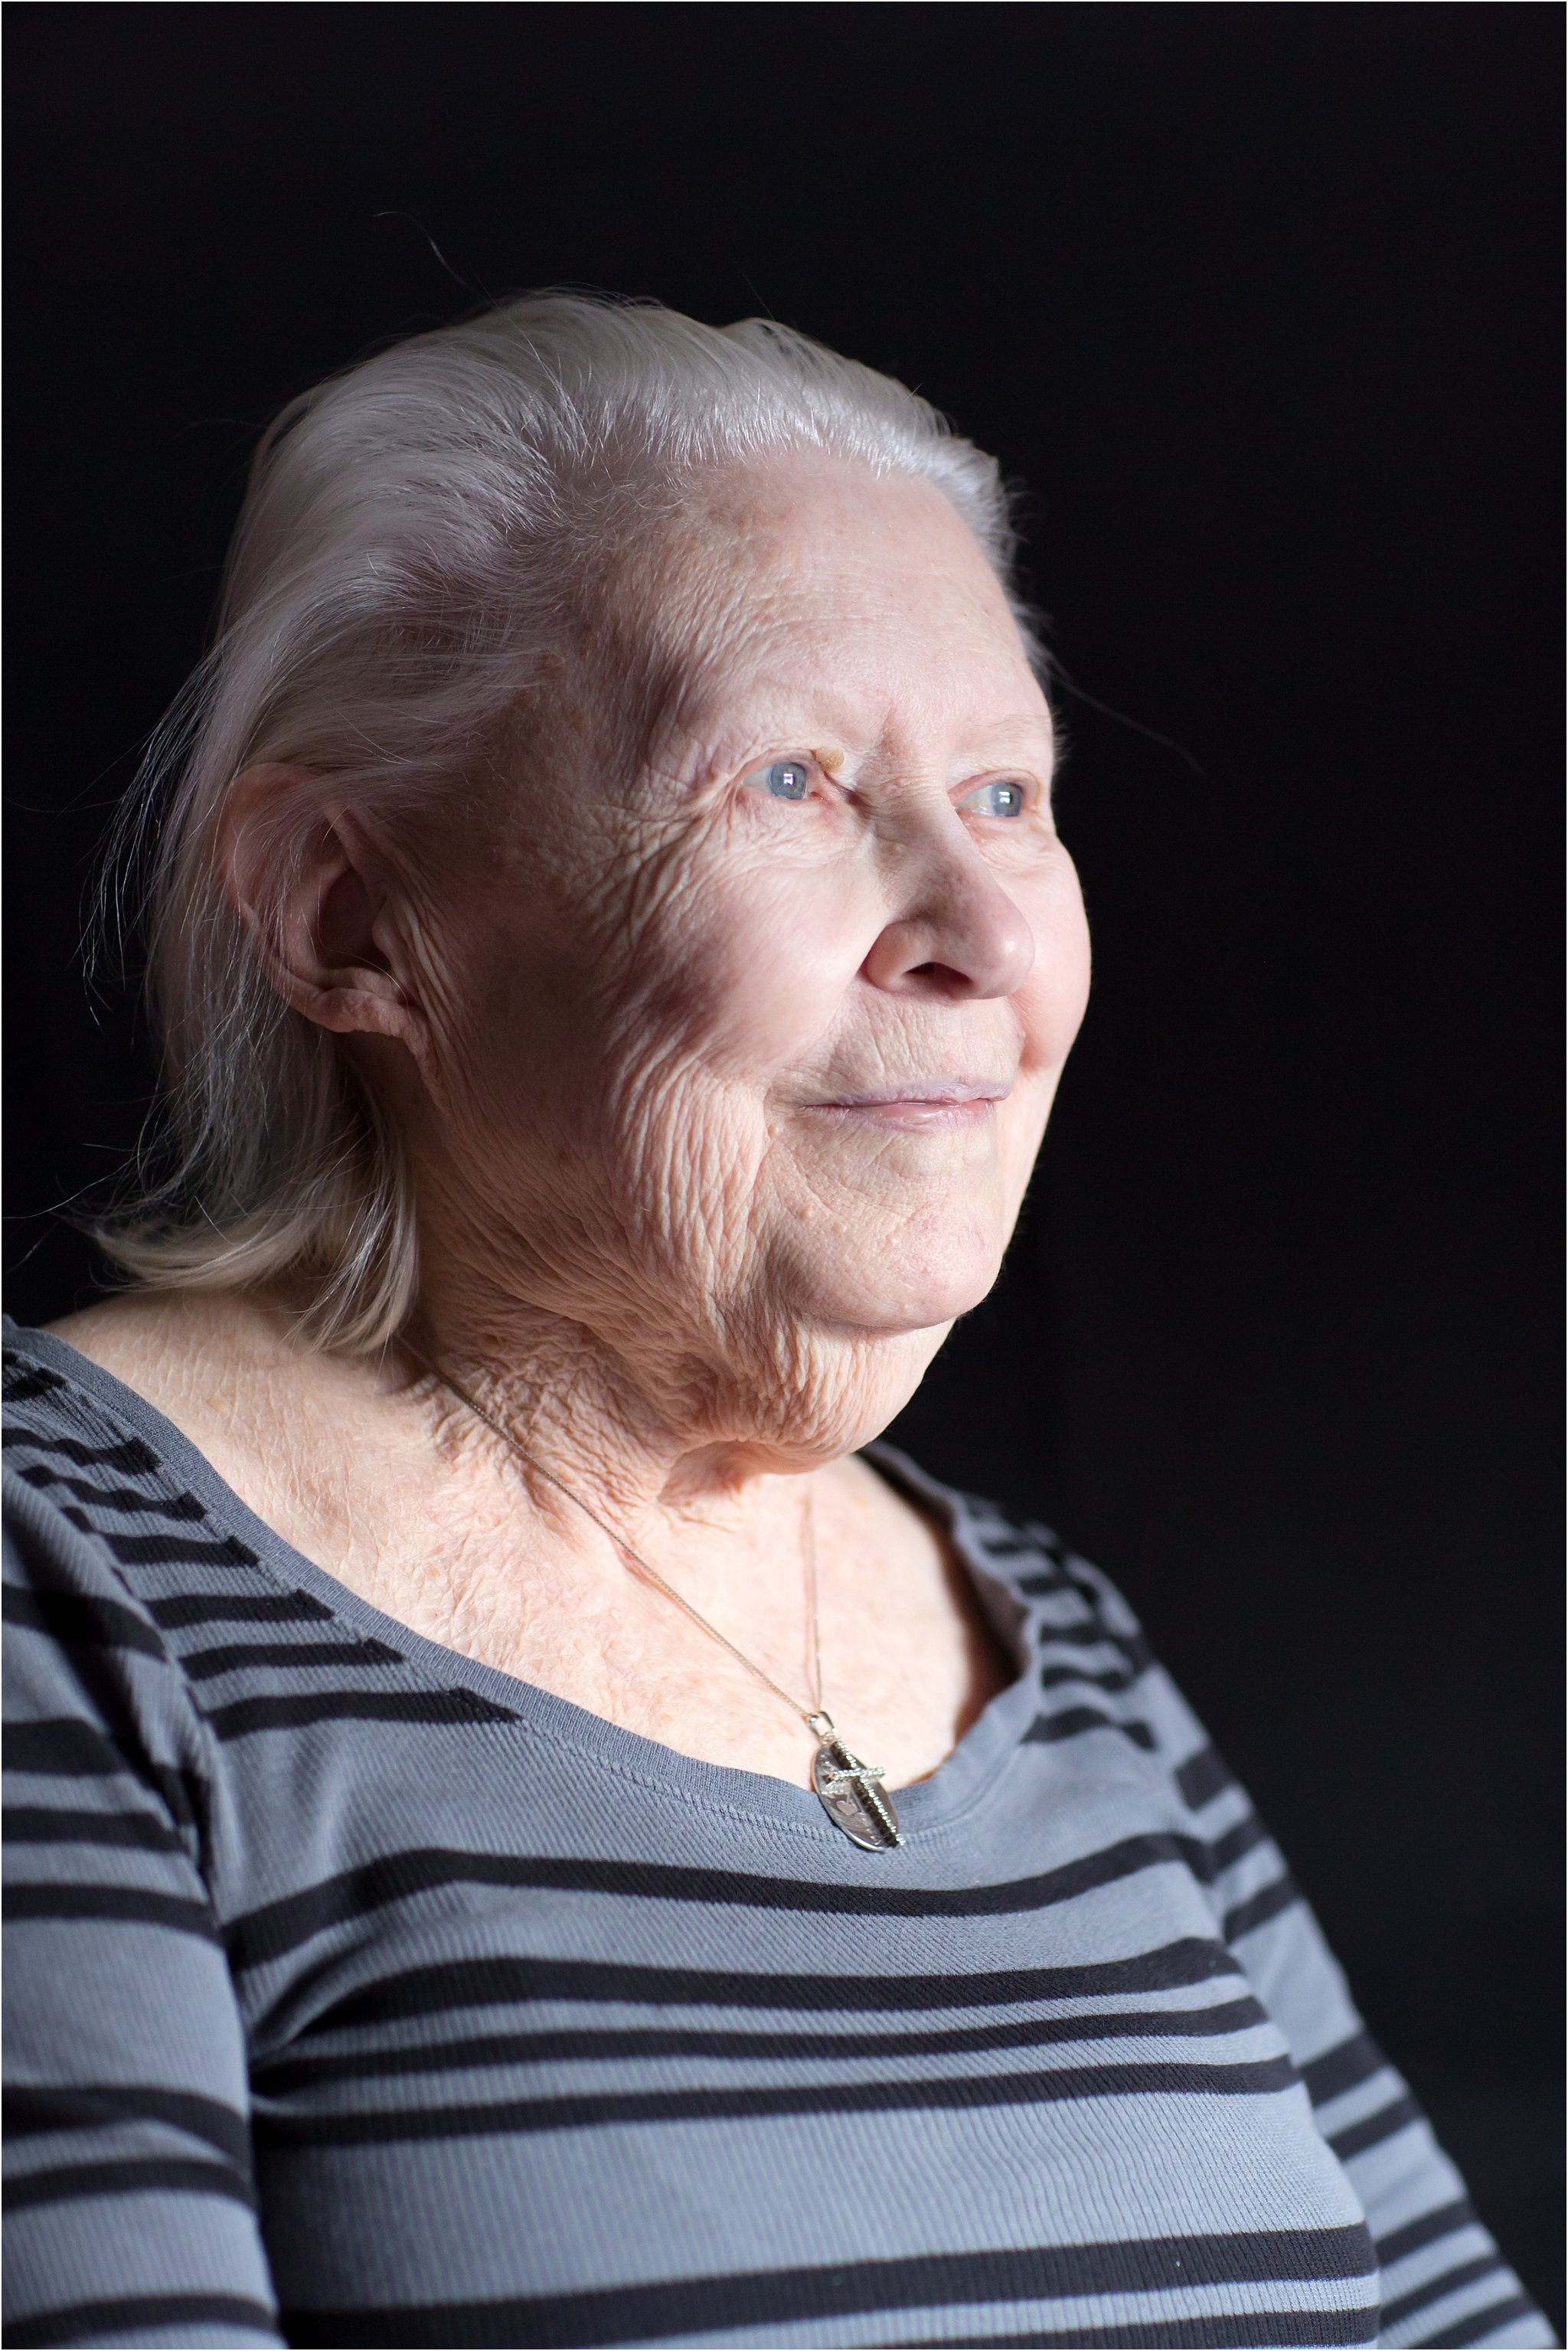 Portrait of Elderly Woman with Black Background